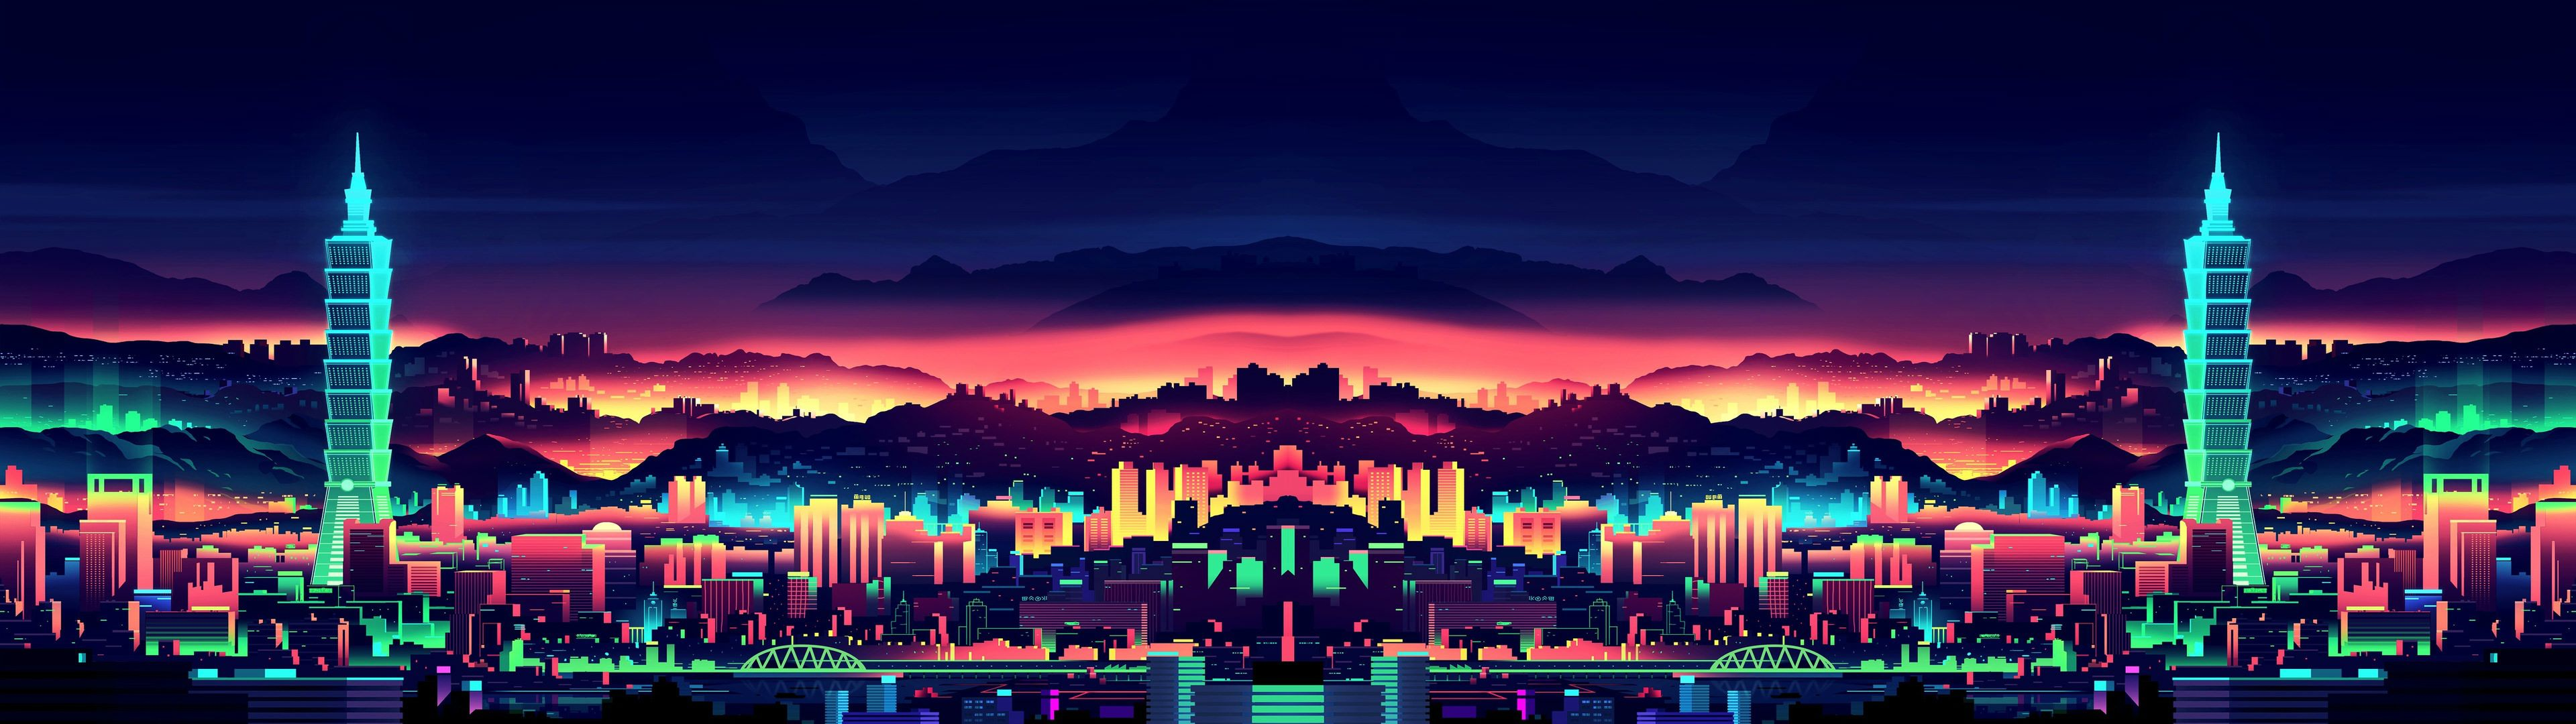 Neon City 3840x1080 Wallpaper 1920x1080 Versions Included